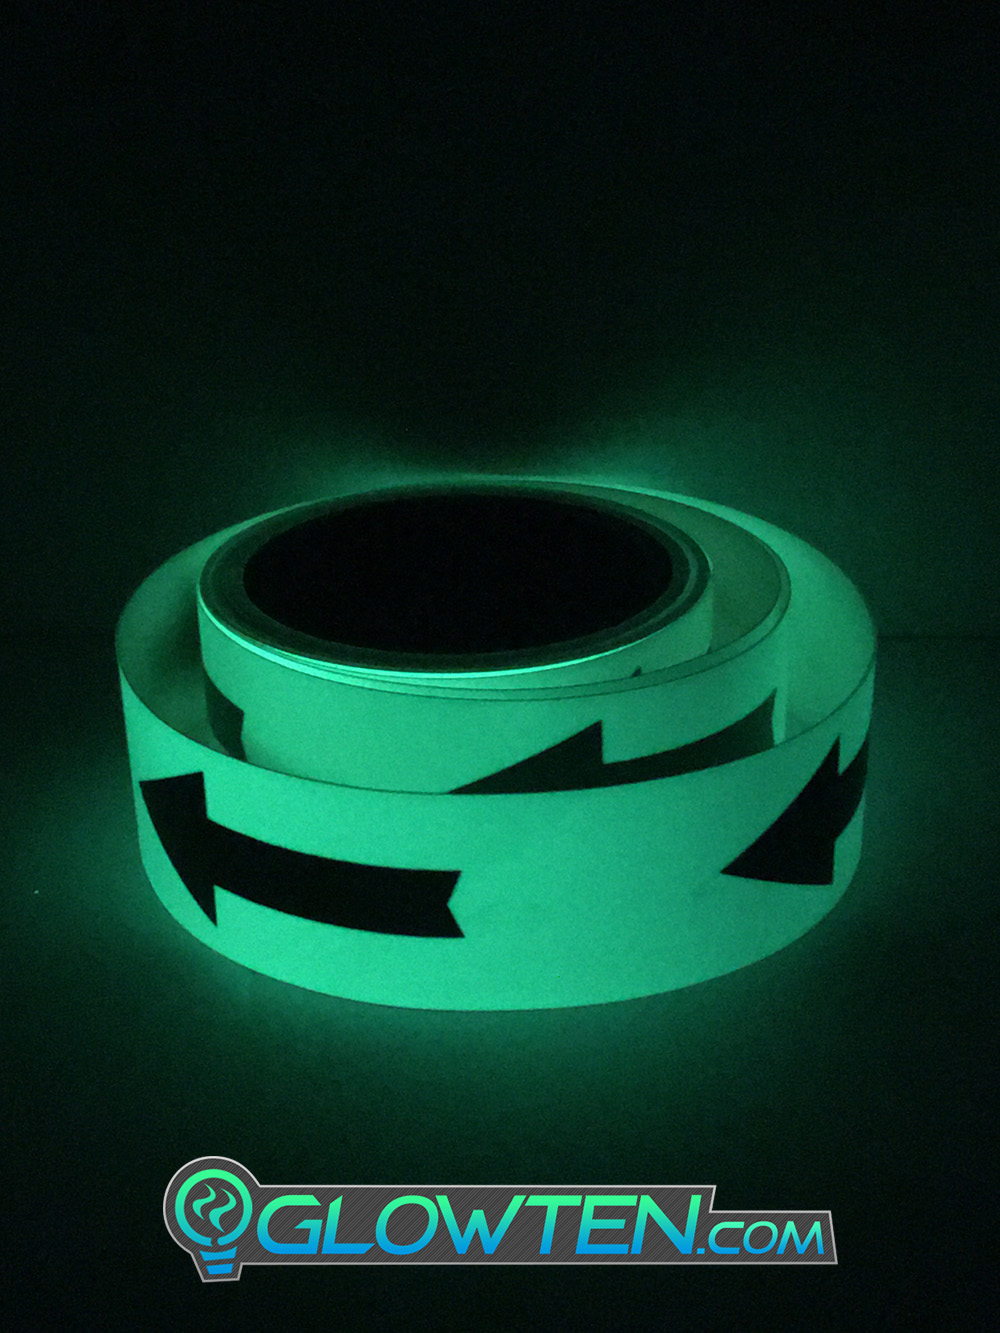 GLOWTEN.com - ARROW POINT TAPE Glow in the Dark Green Single Direction Sign All Purpose Tape Roll Lite Green Directional Marking Tape 2